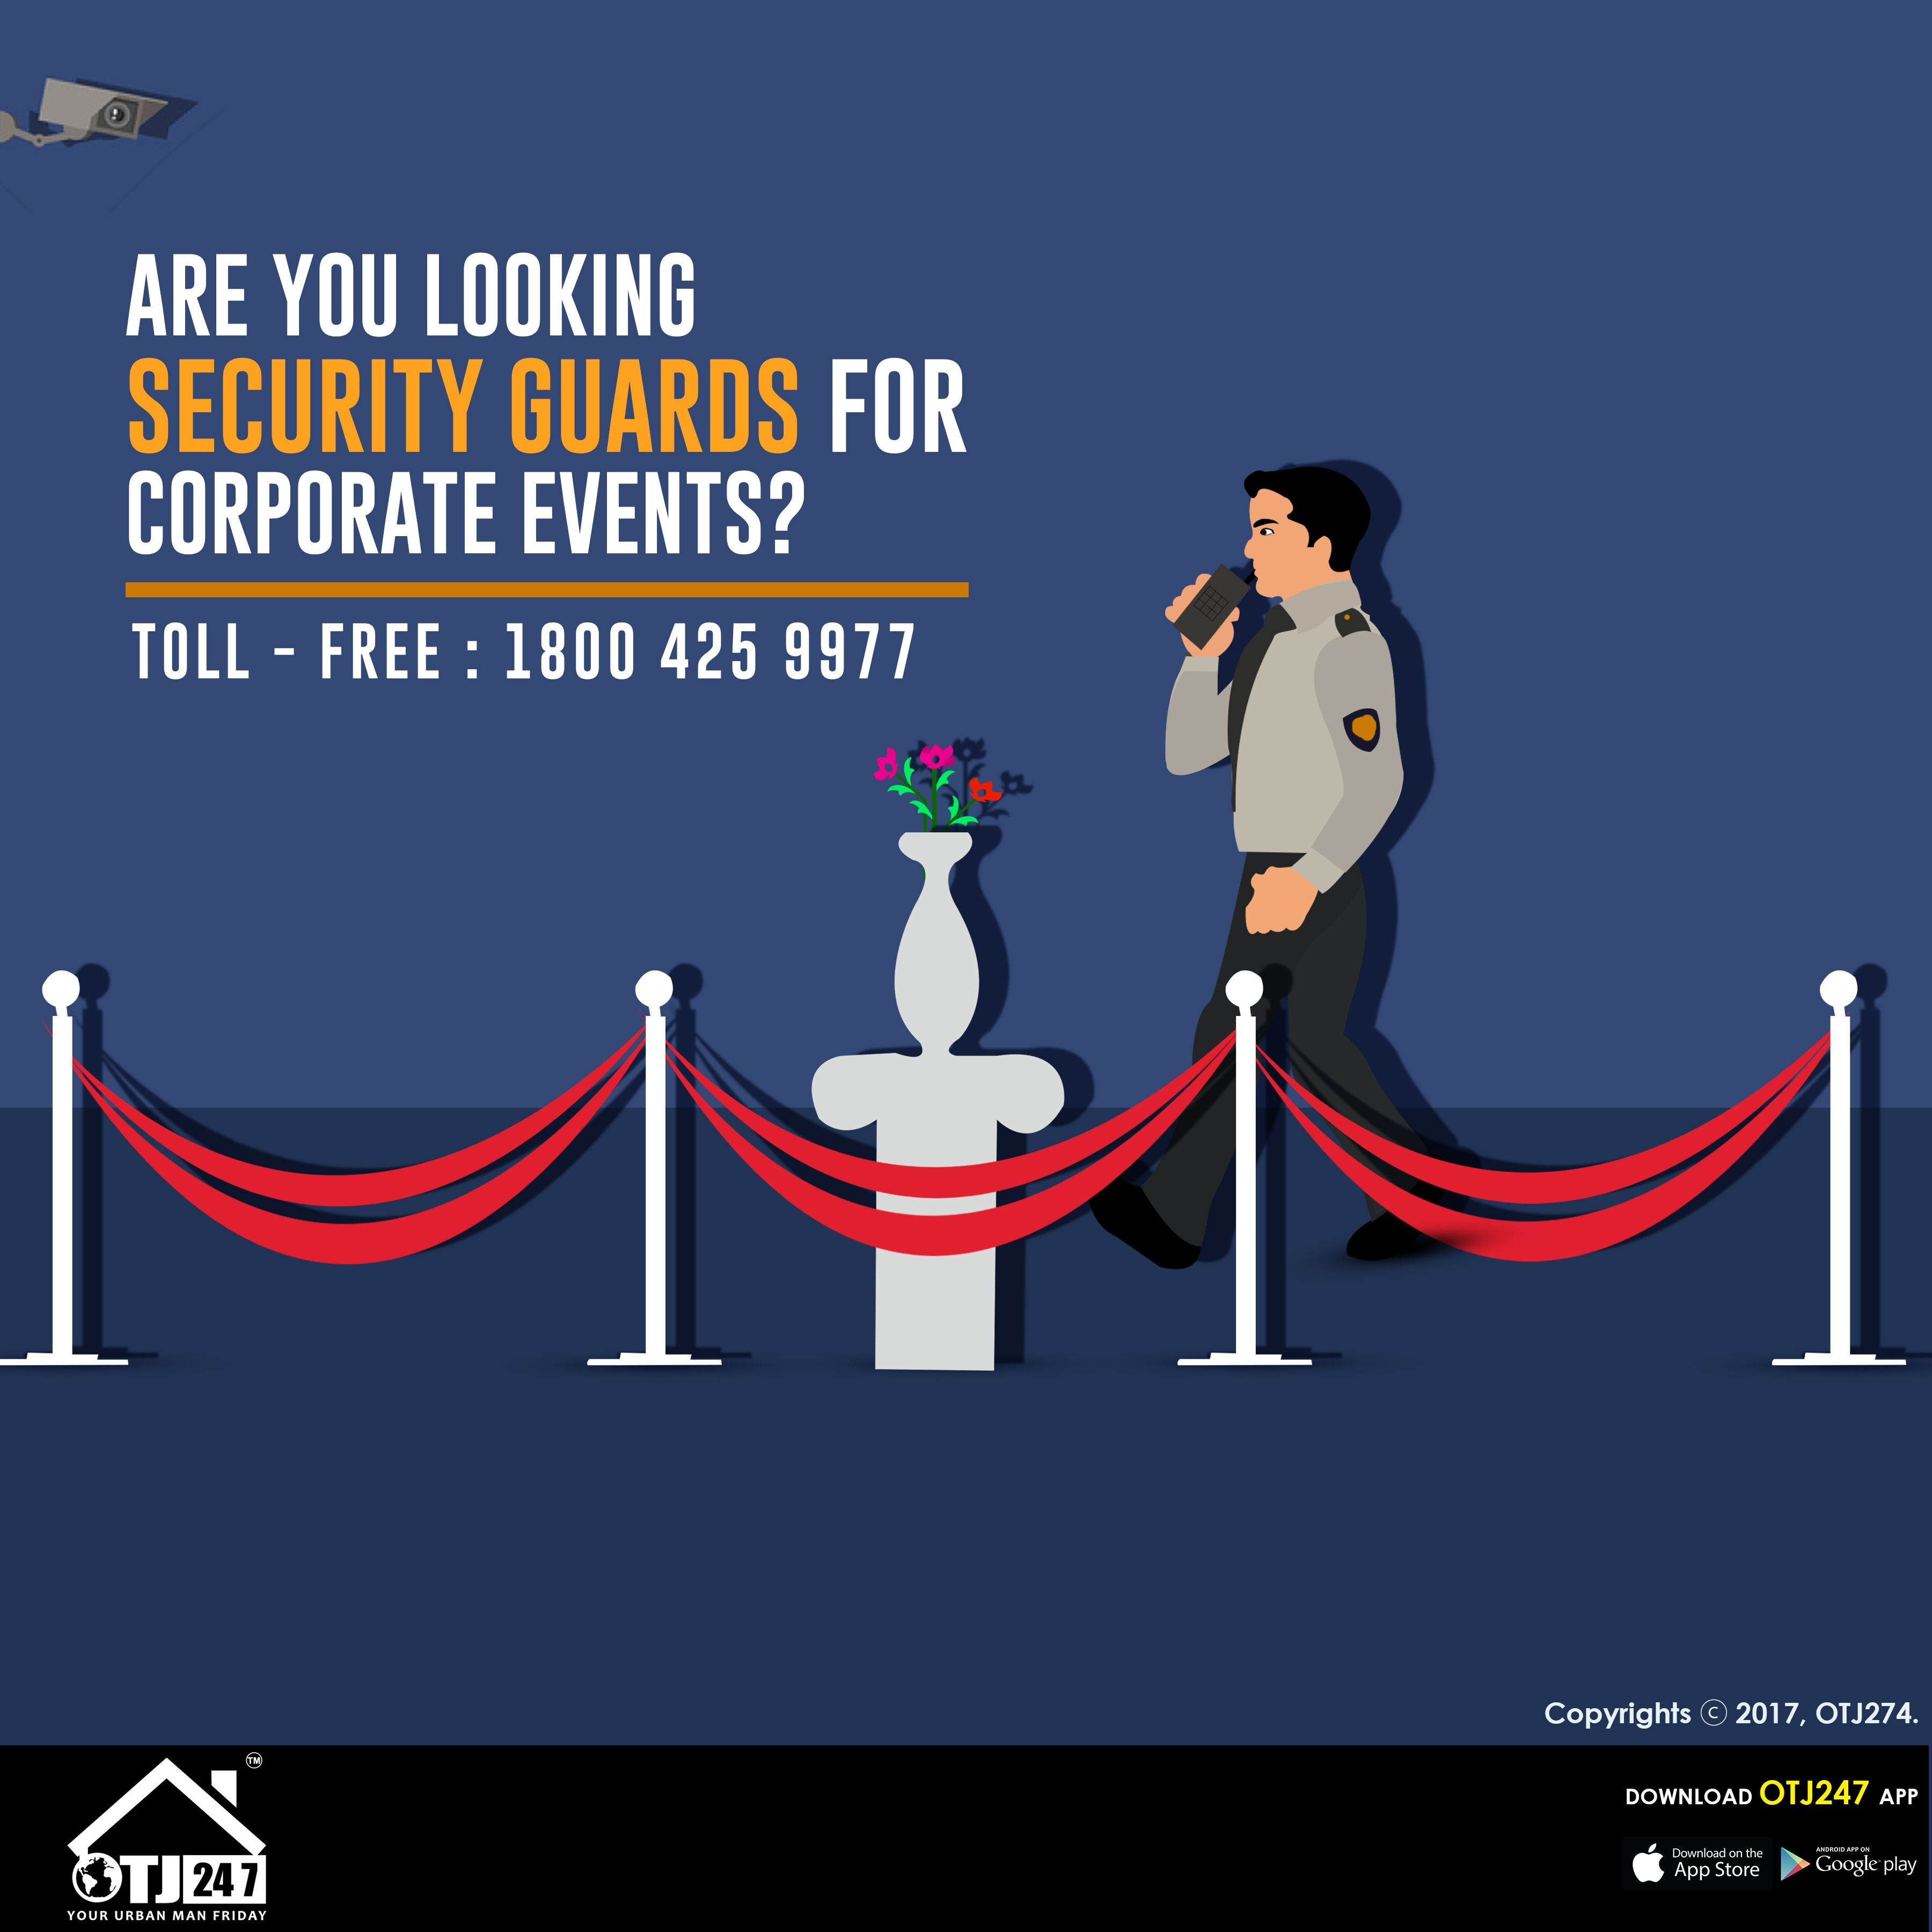 Are You Looking Security Guards For Corporate Events? Book